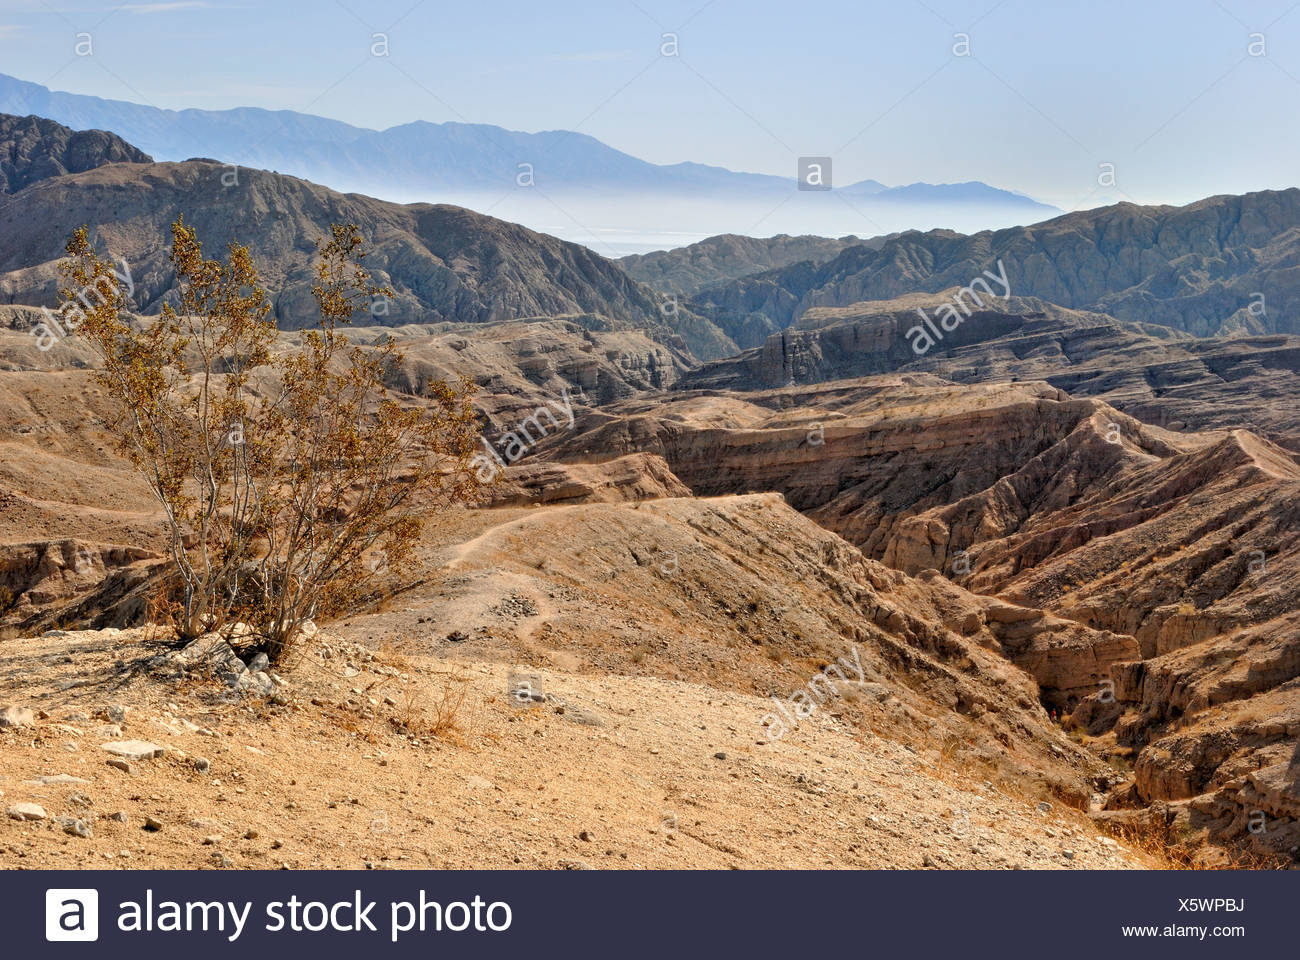 Hiking in the Mecca Hills, Indio, Southern California, California, USA - Stock Image